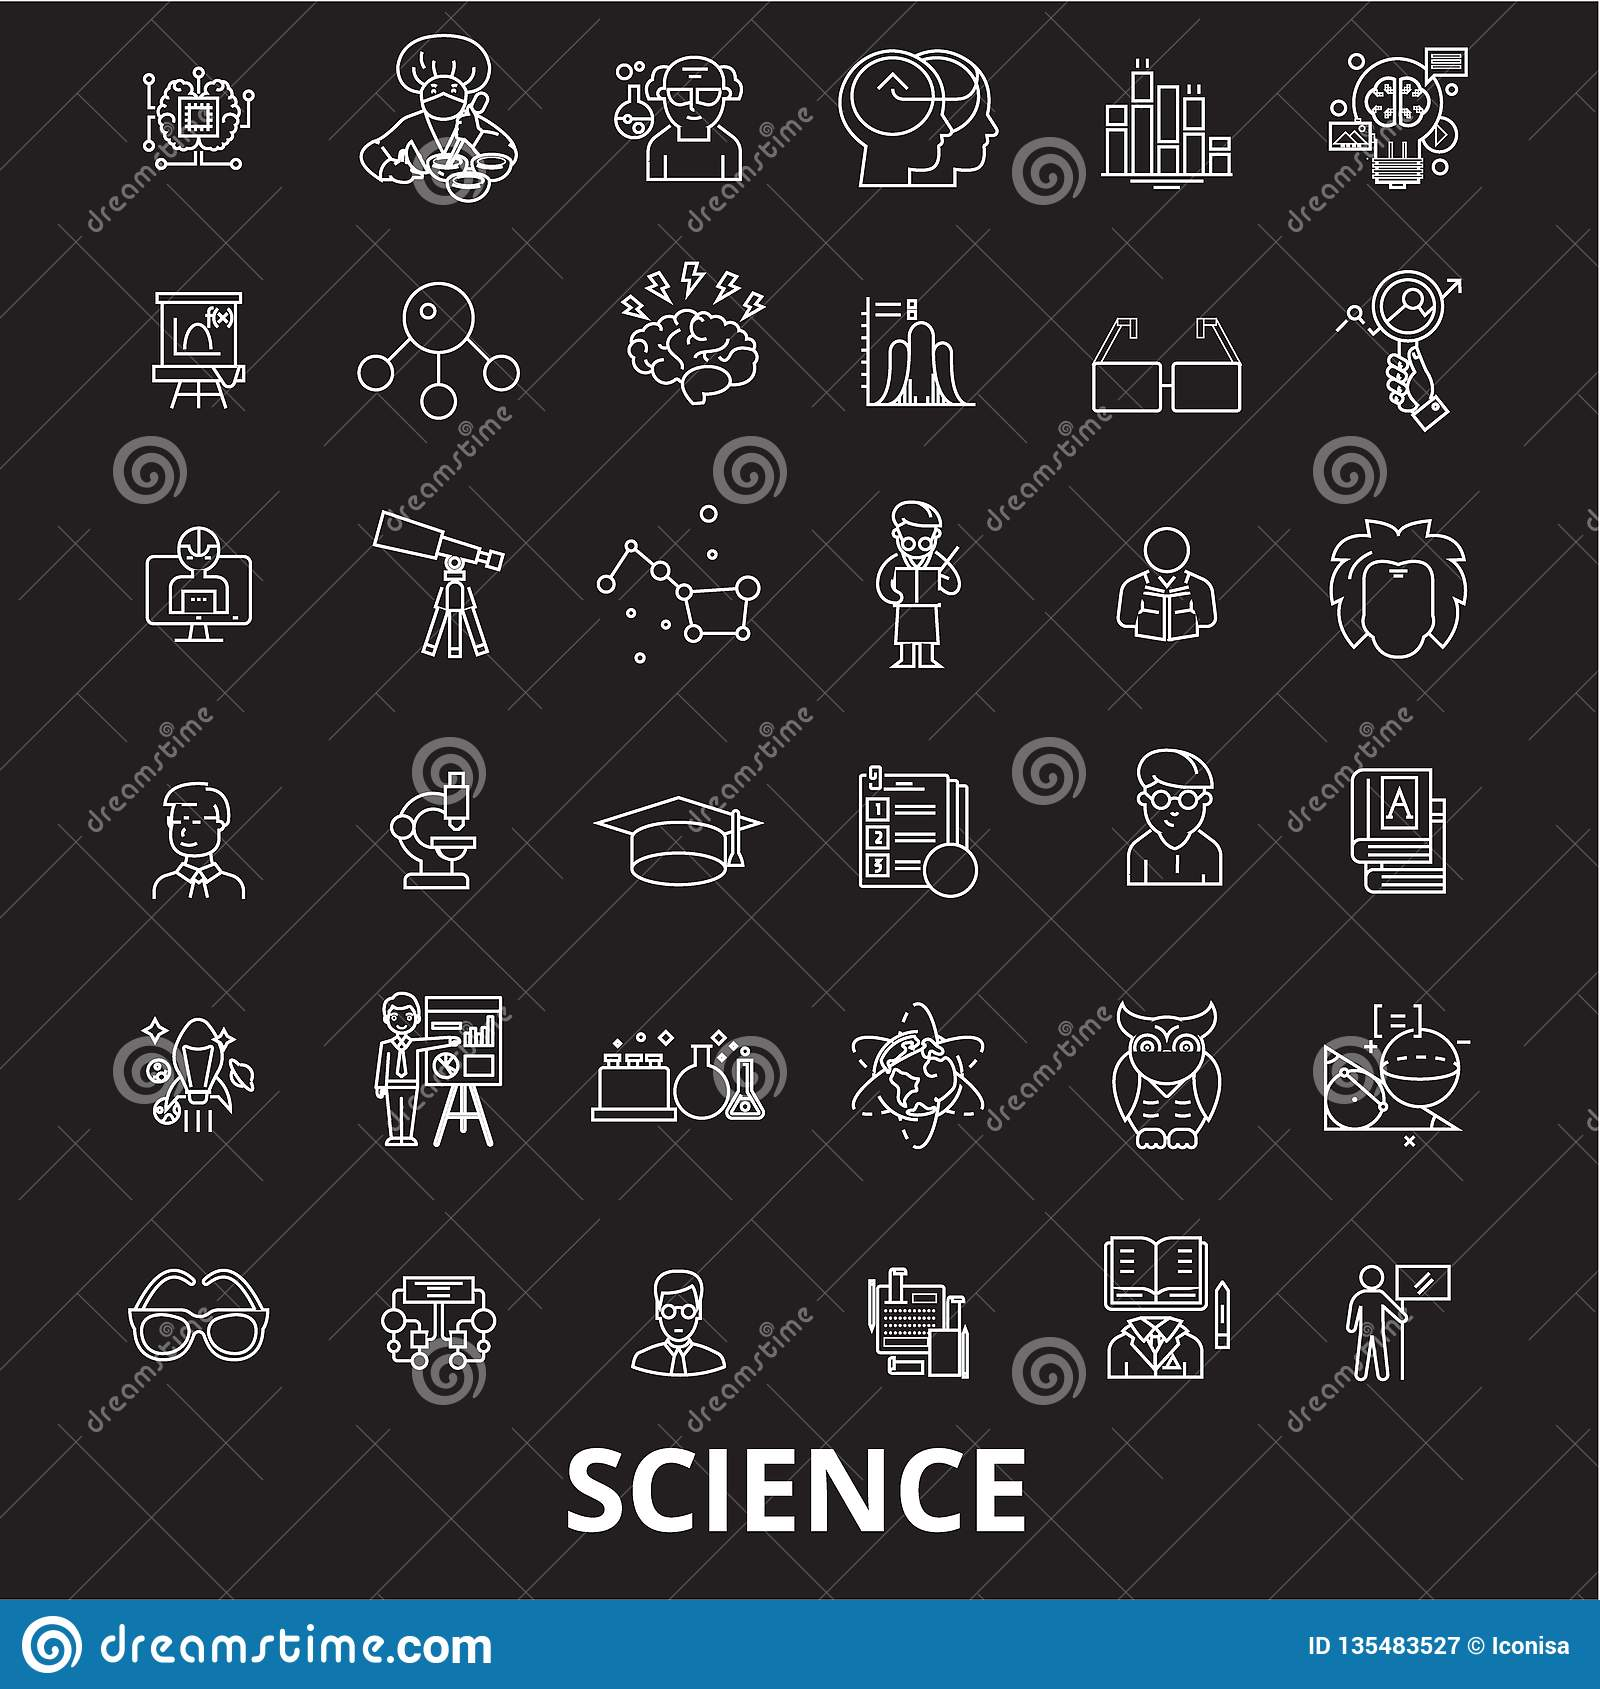 Science Editable Line Icons Vector Set On Black Background